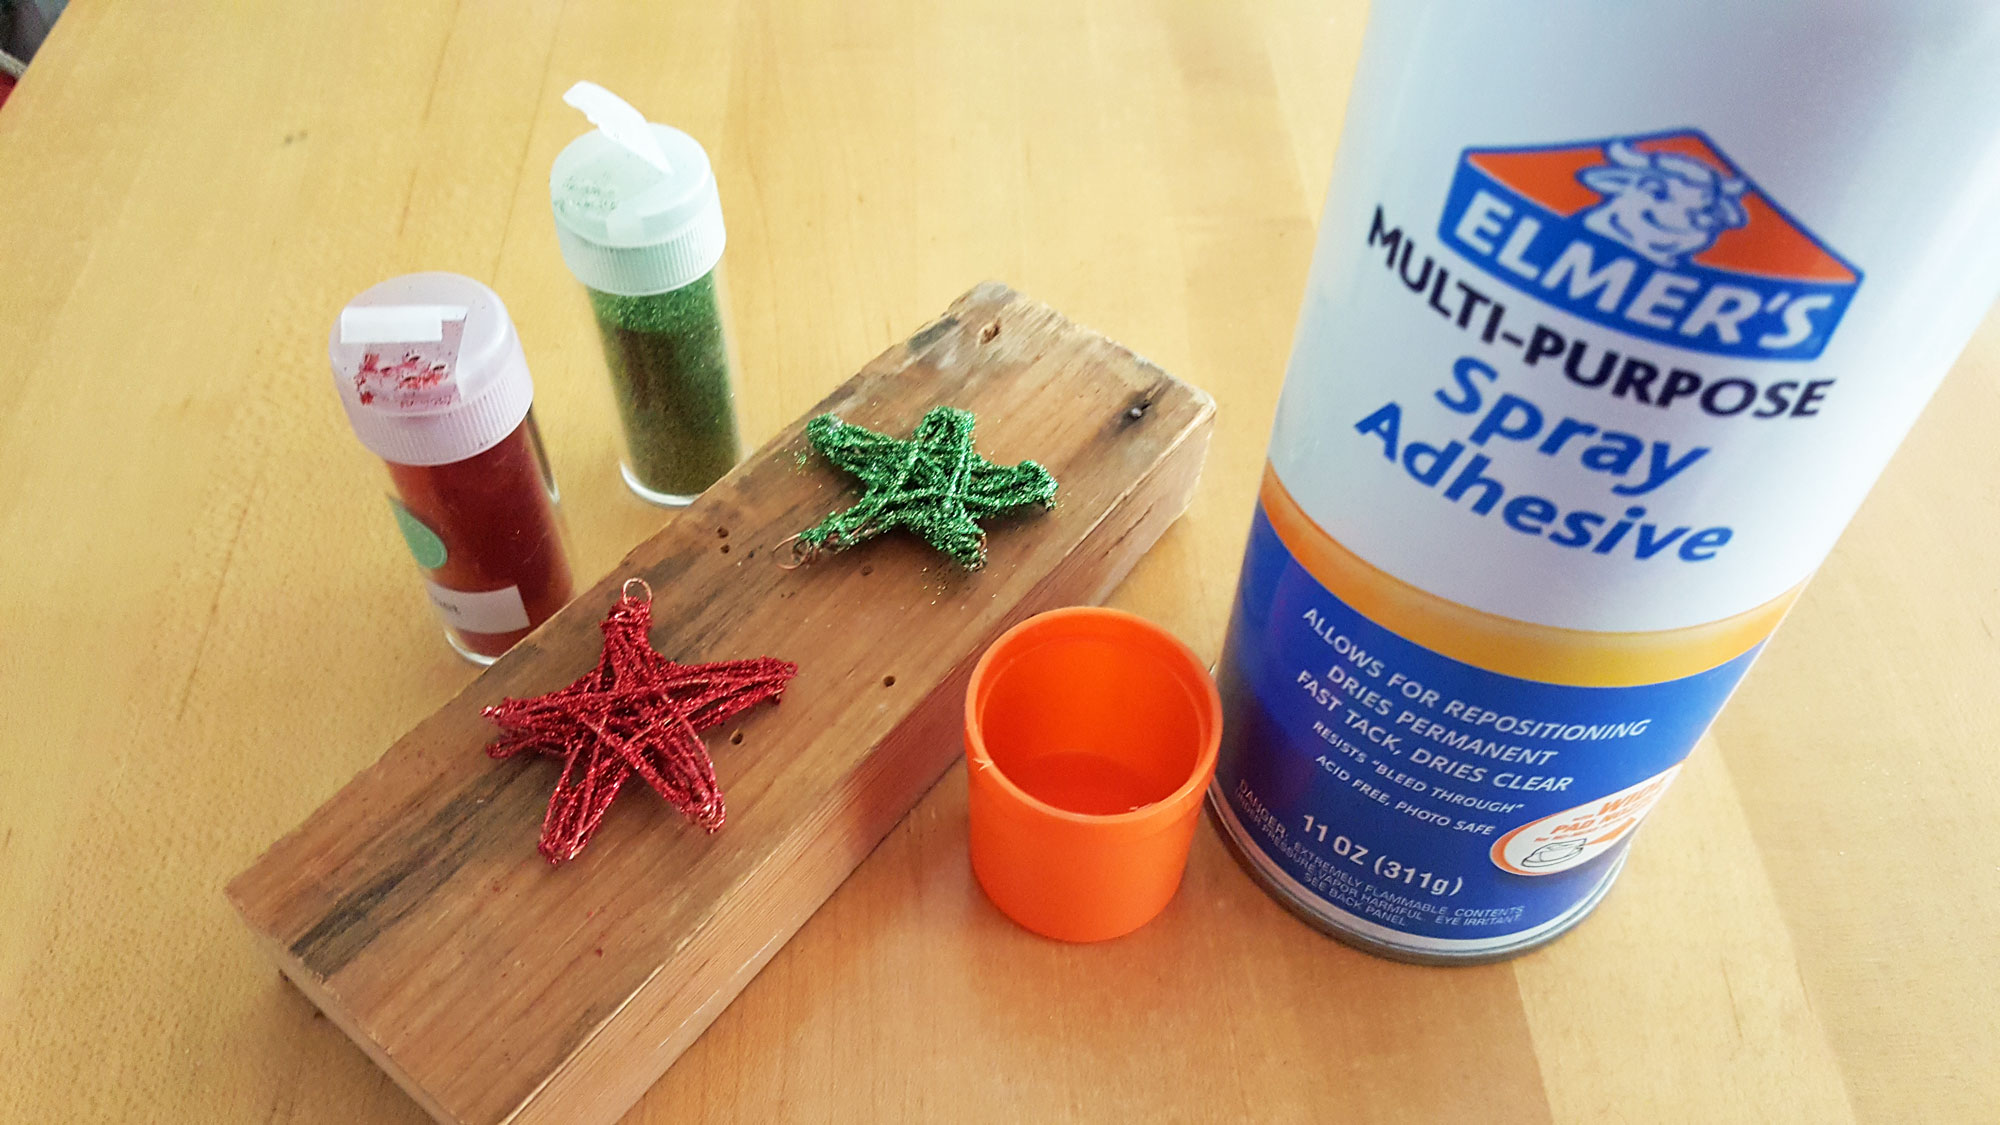 Step 5 is to use spray adhesive to coat the stars, then shake glitter all over them | OrnamentShop.com